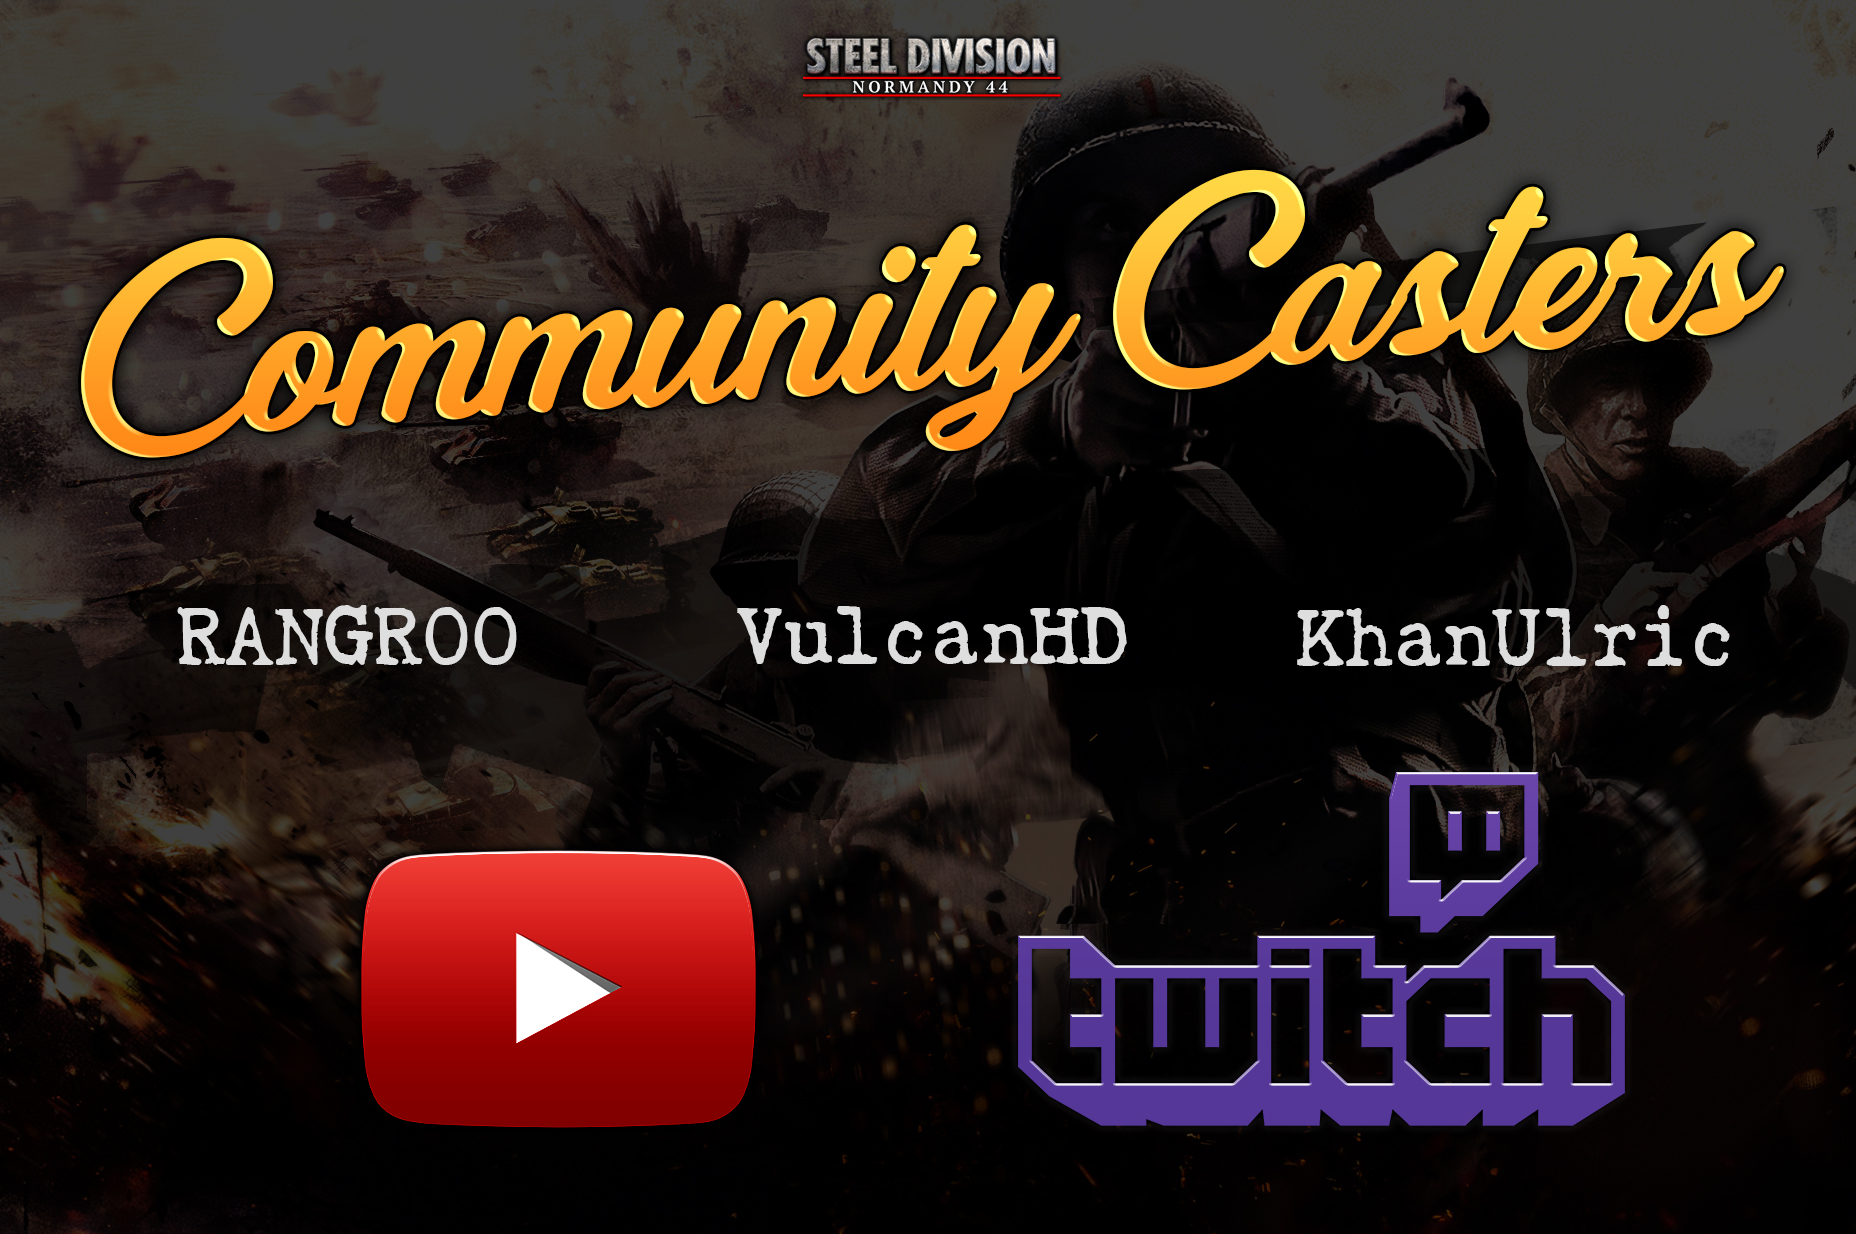 First_Blood_Steel_Division_Casters_Youtube_Twitch